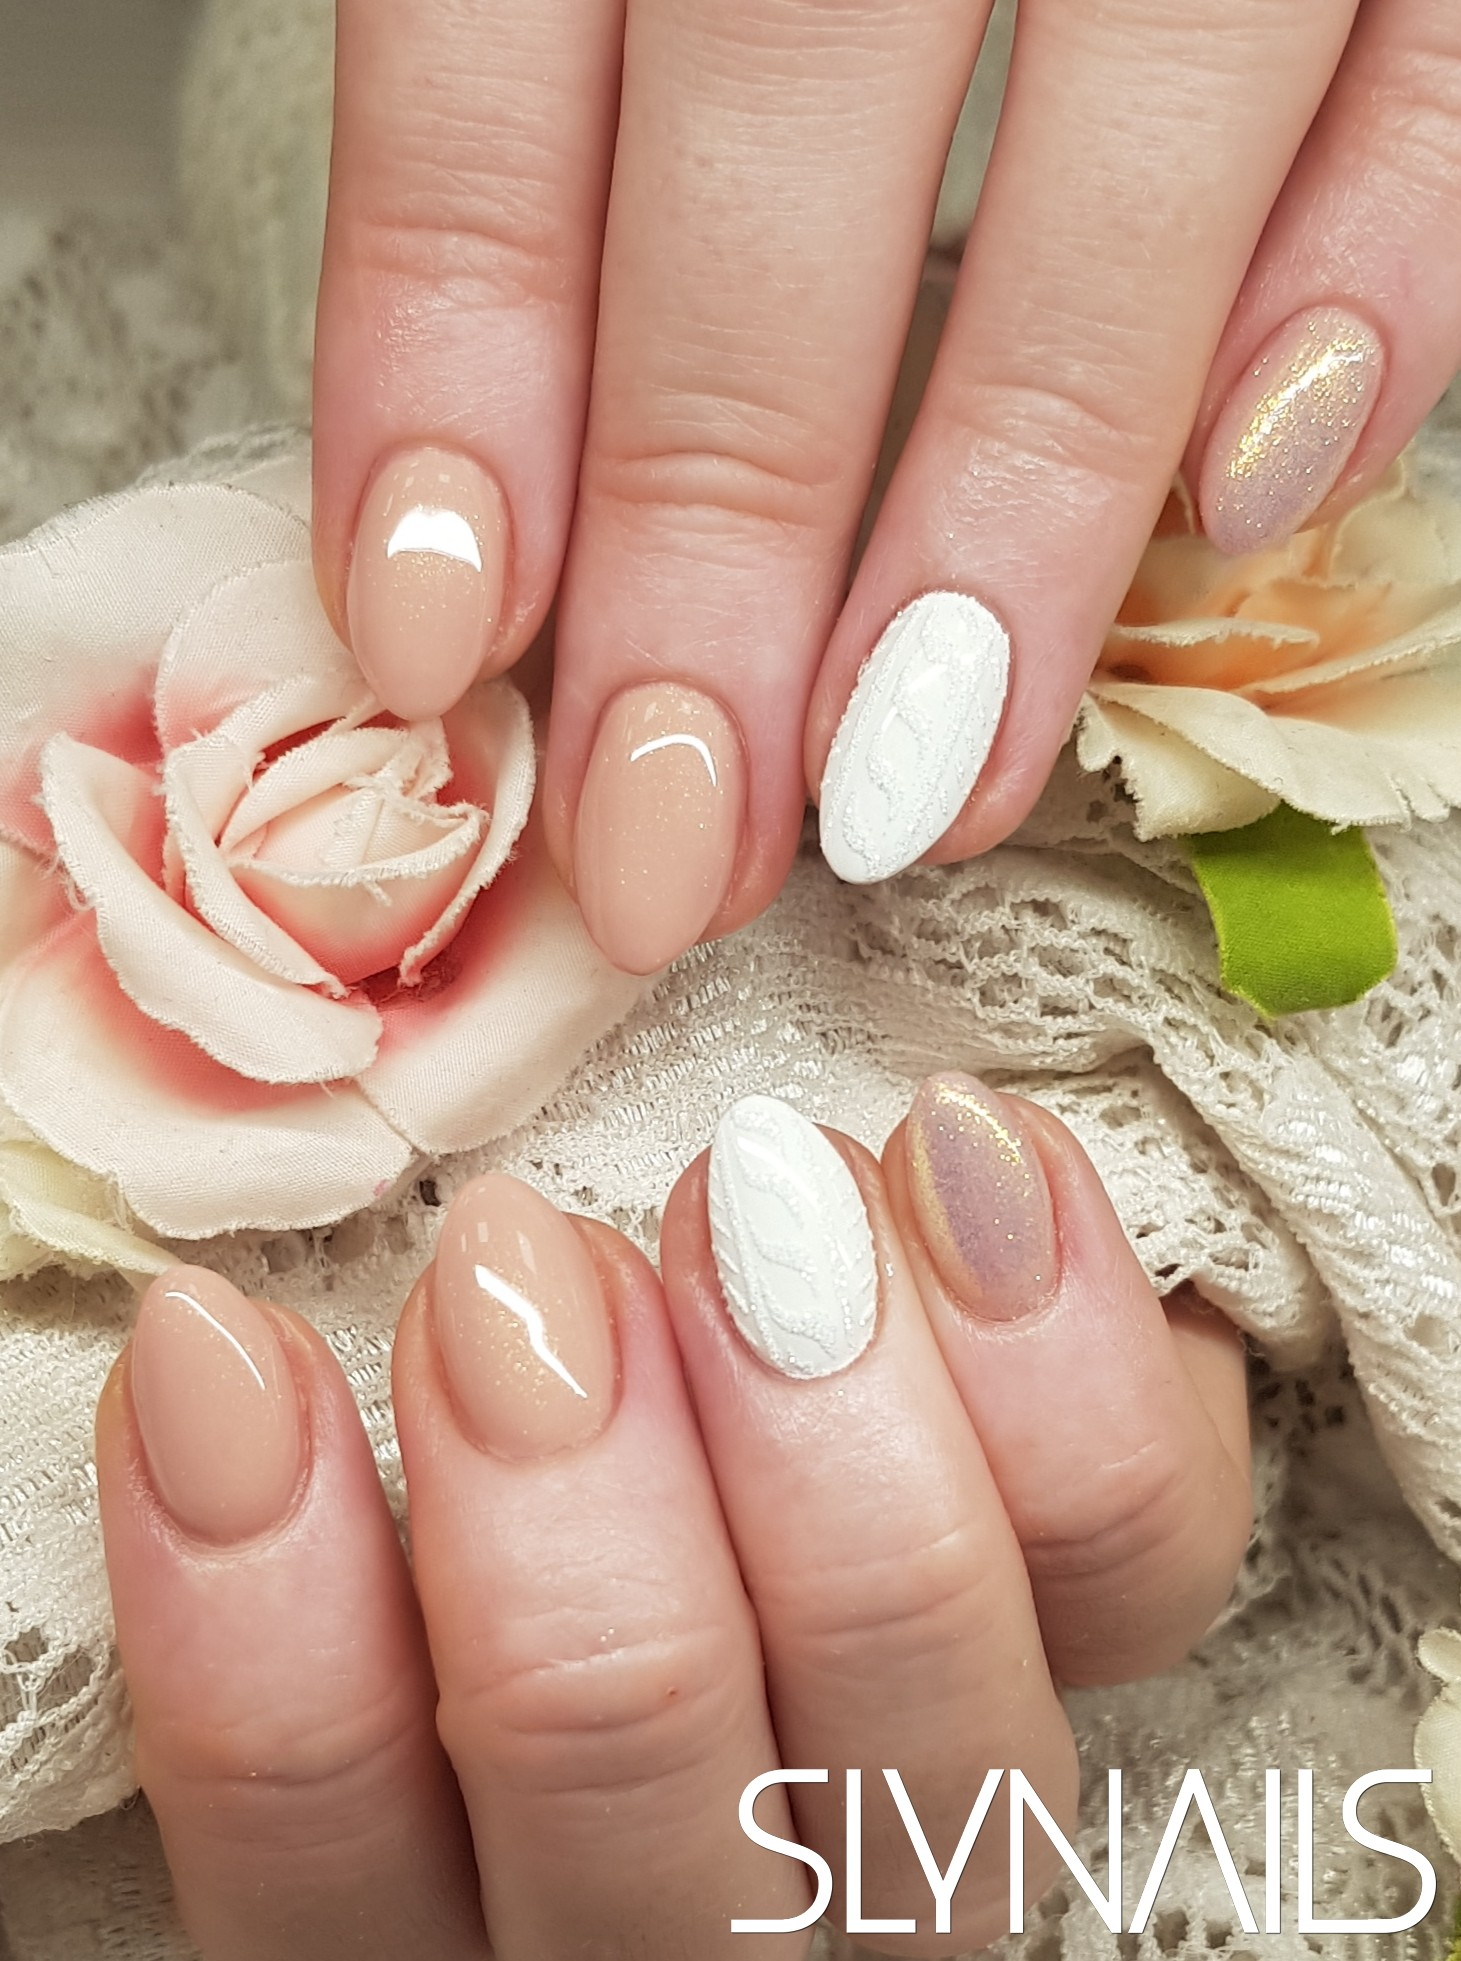 Gel-lac (gel polish), Nude, Almond, Mermaid, One color, White, Sweater Effect, Sugar Effect, Winter-Christmas